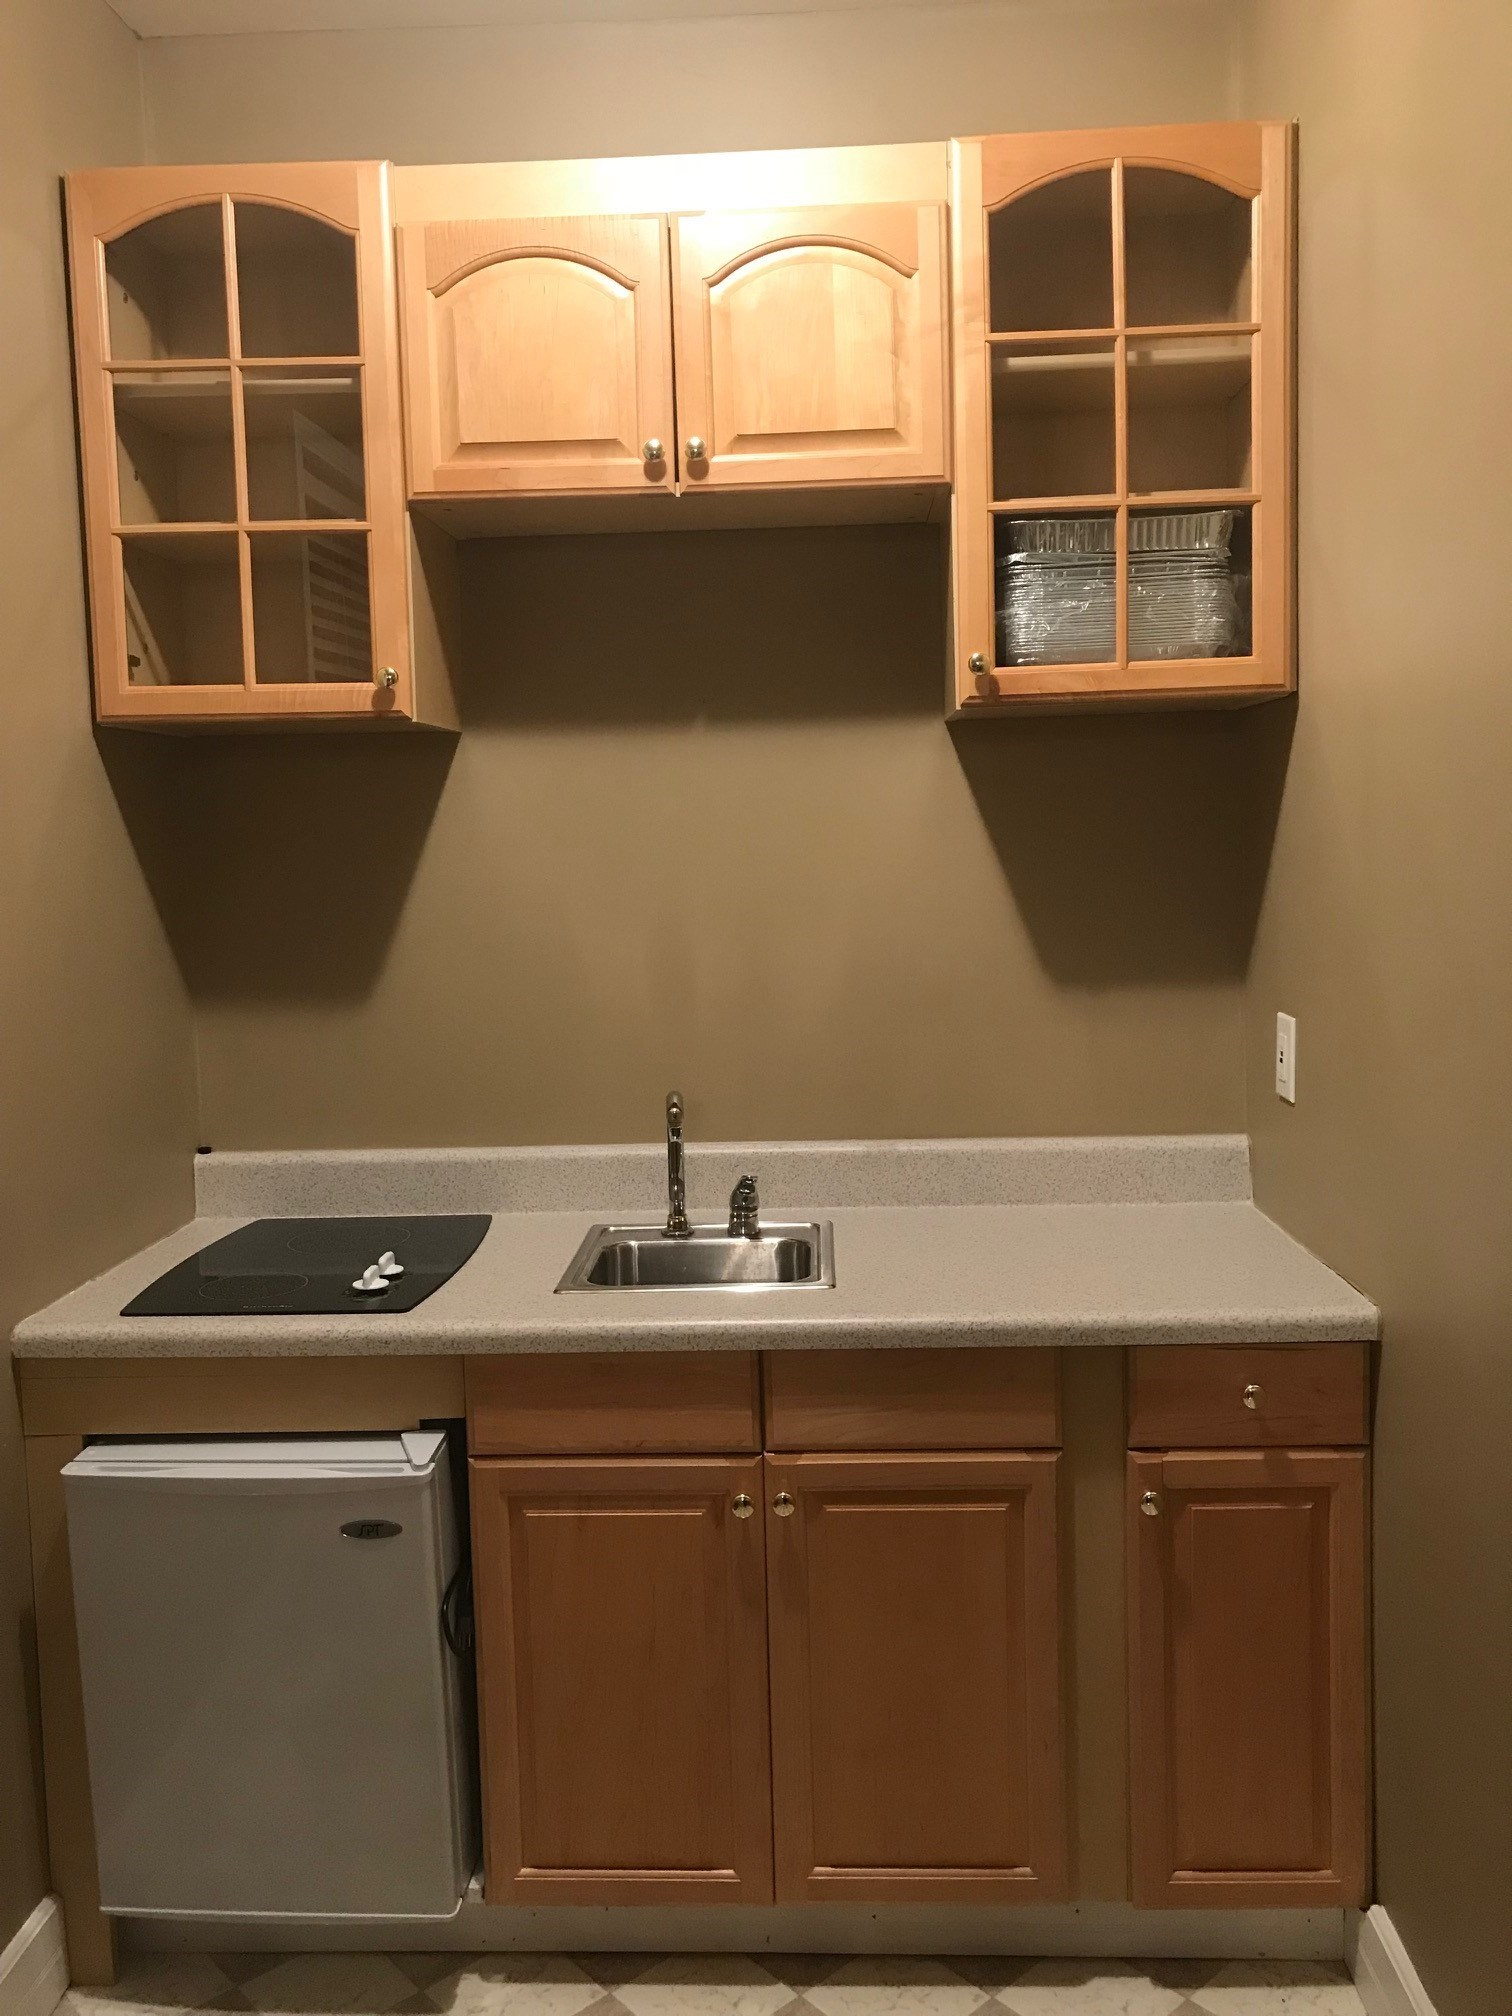 Find Basement Apartment For Rent In Buford GA Sulekha Rentals - Basement apartments for rent in pg maryland